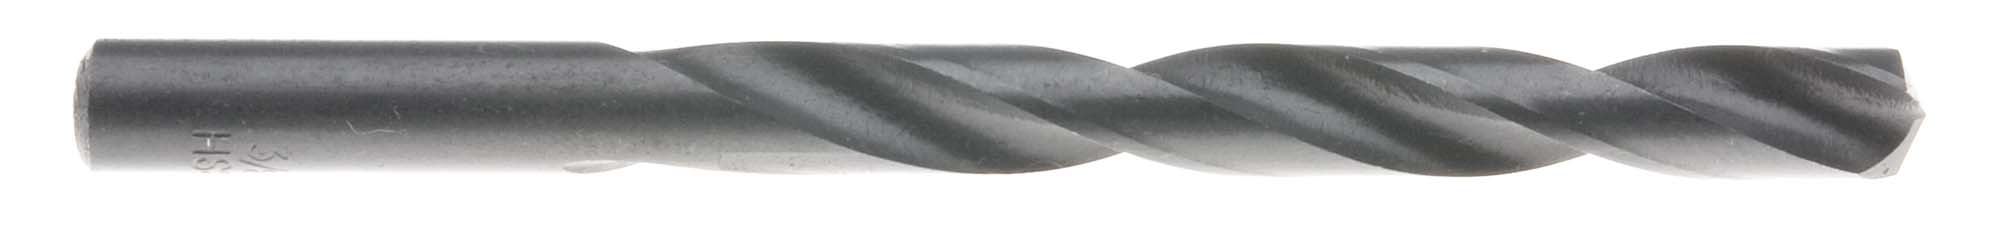 "#8 (.1990"") Heavy Duty Split Point Jobber Drill Bit, High Speed Steel"